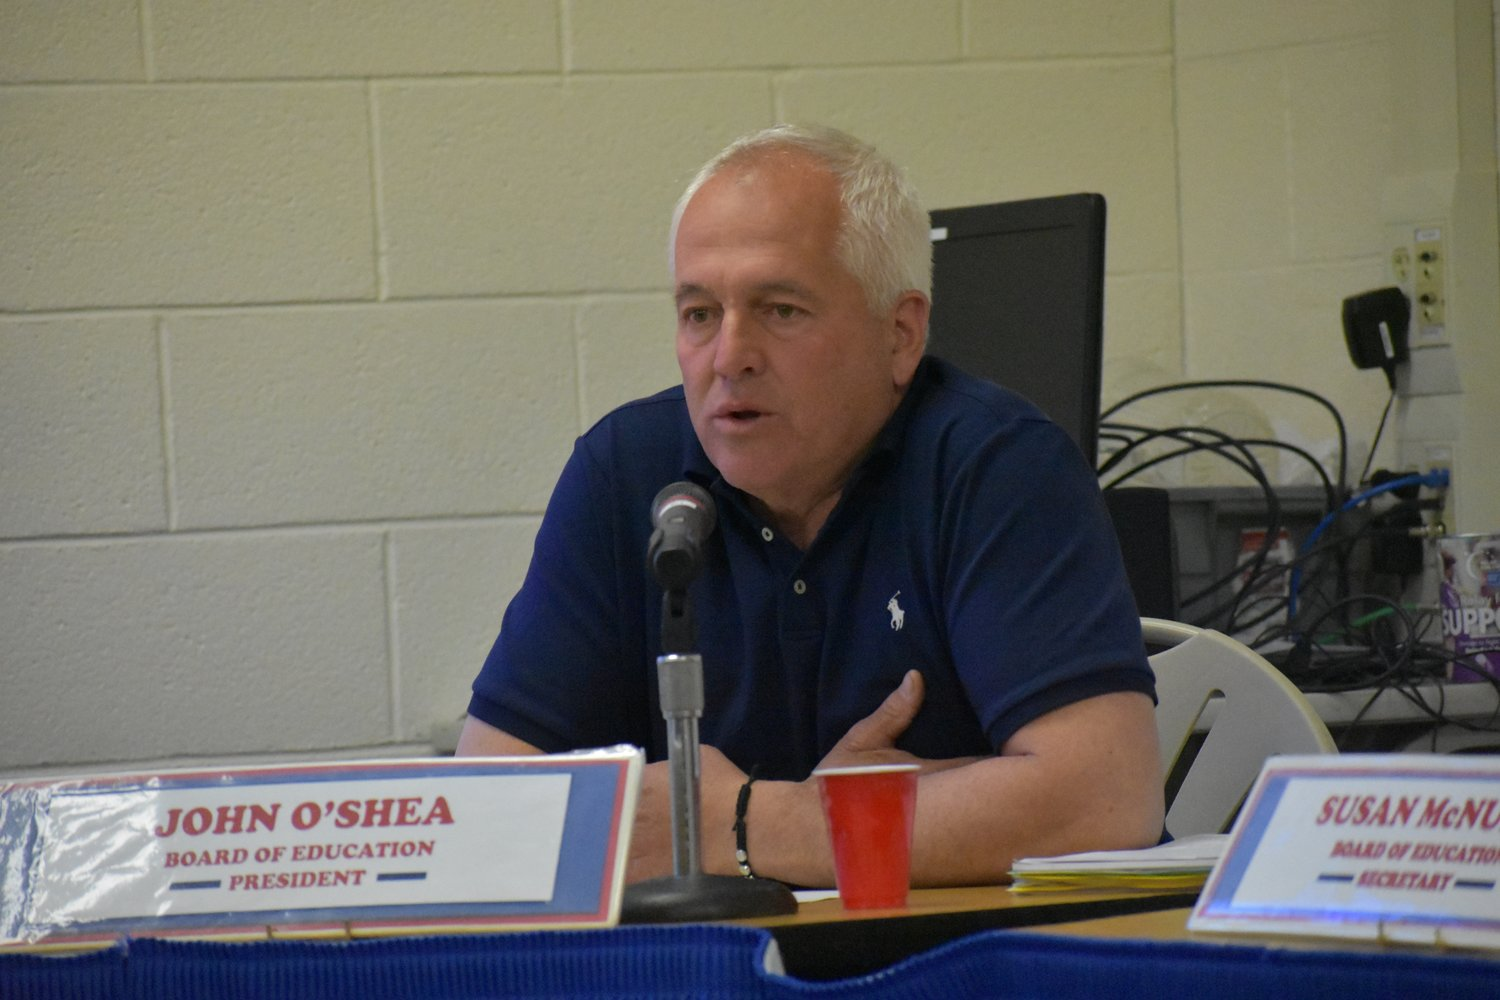 Board of Education President John O'Shea advocated for stronger guidance services than were proposed in the budget.